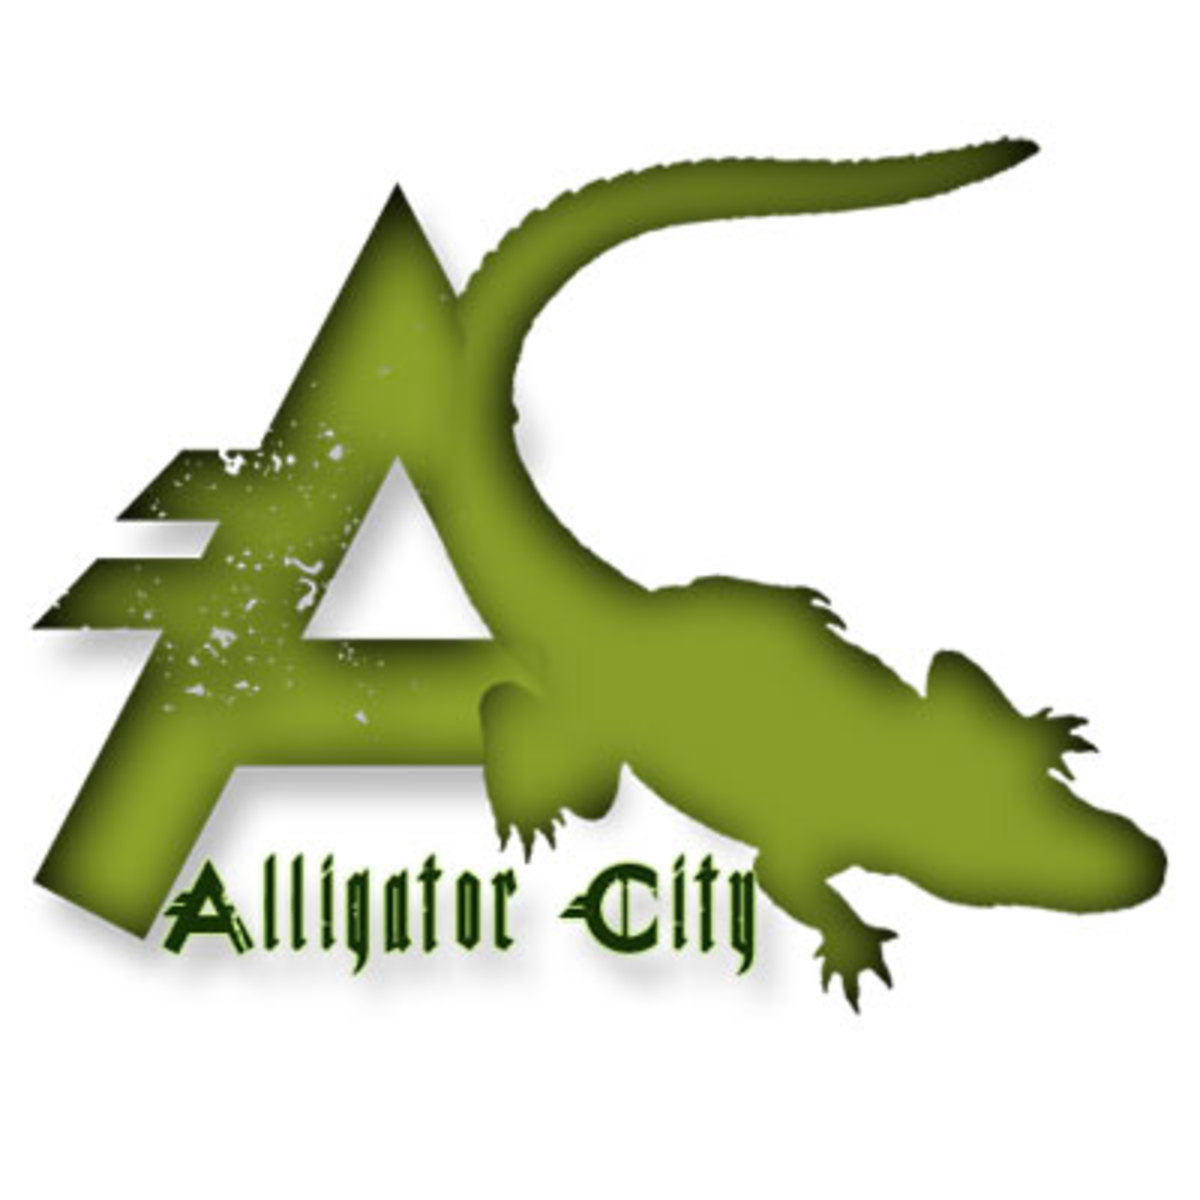 alligatorcity.jpg